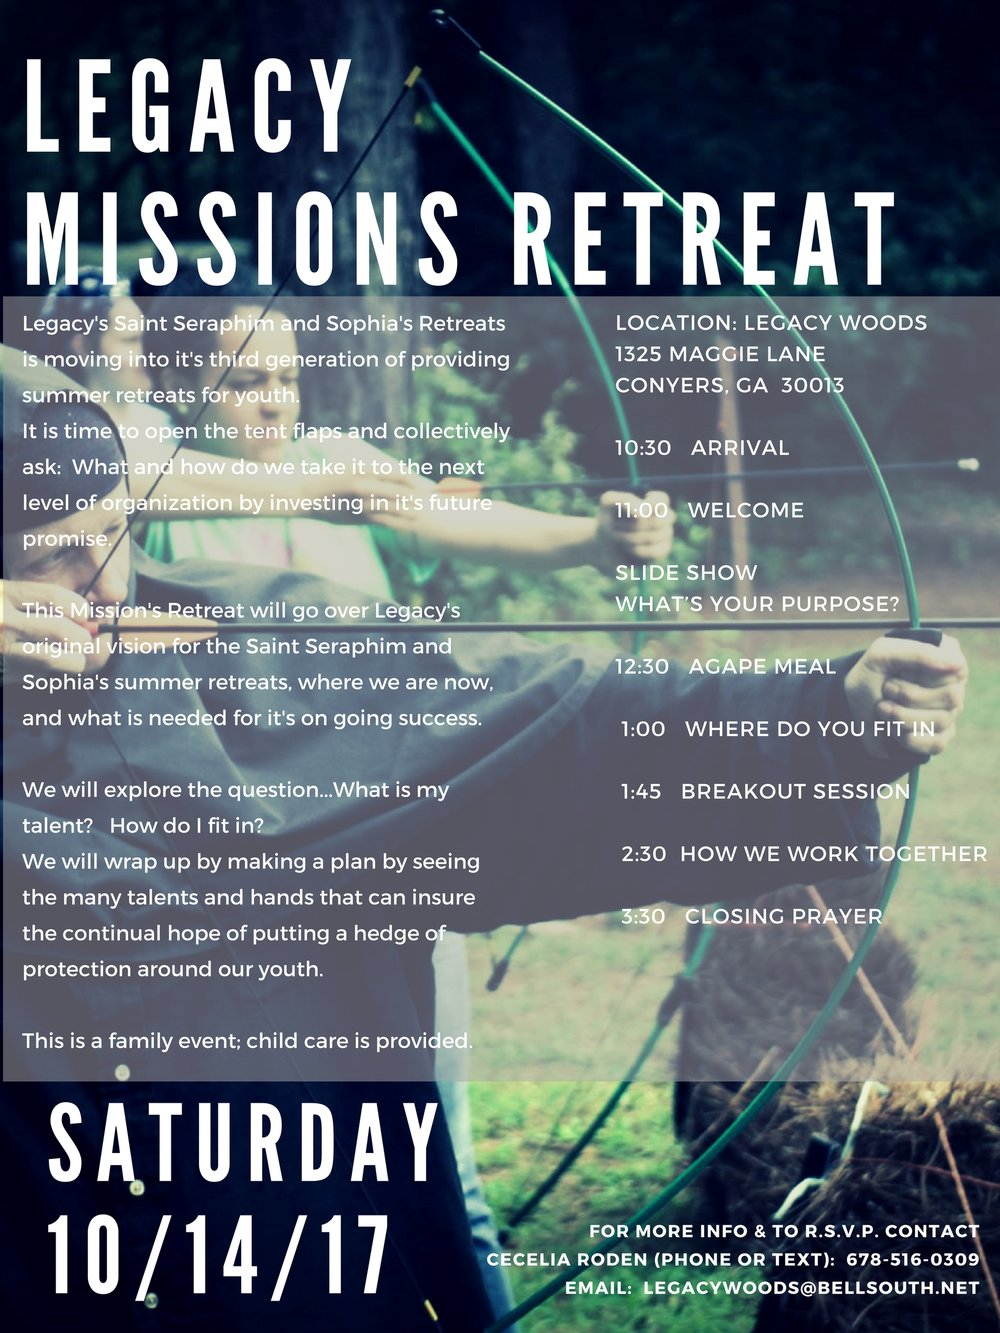 LEGACY'S MISSIONS RETREATLegacy's Saint Seraphim and Sophia's Retreats is moving into it's third generation of providing summer retreats for youth. It is time to open the tent flaps and collectively ask- What and how.jpg